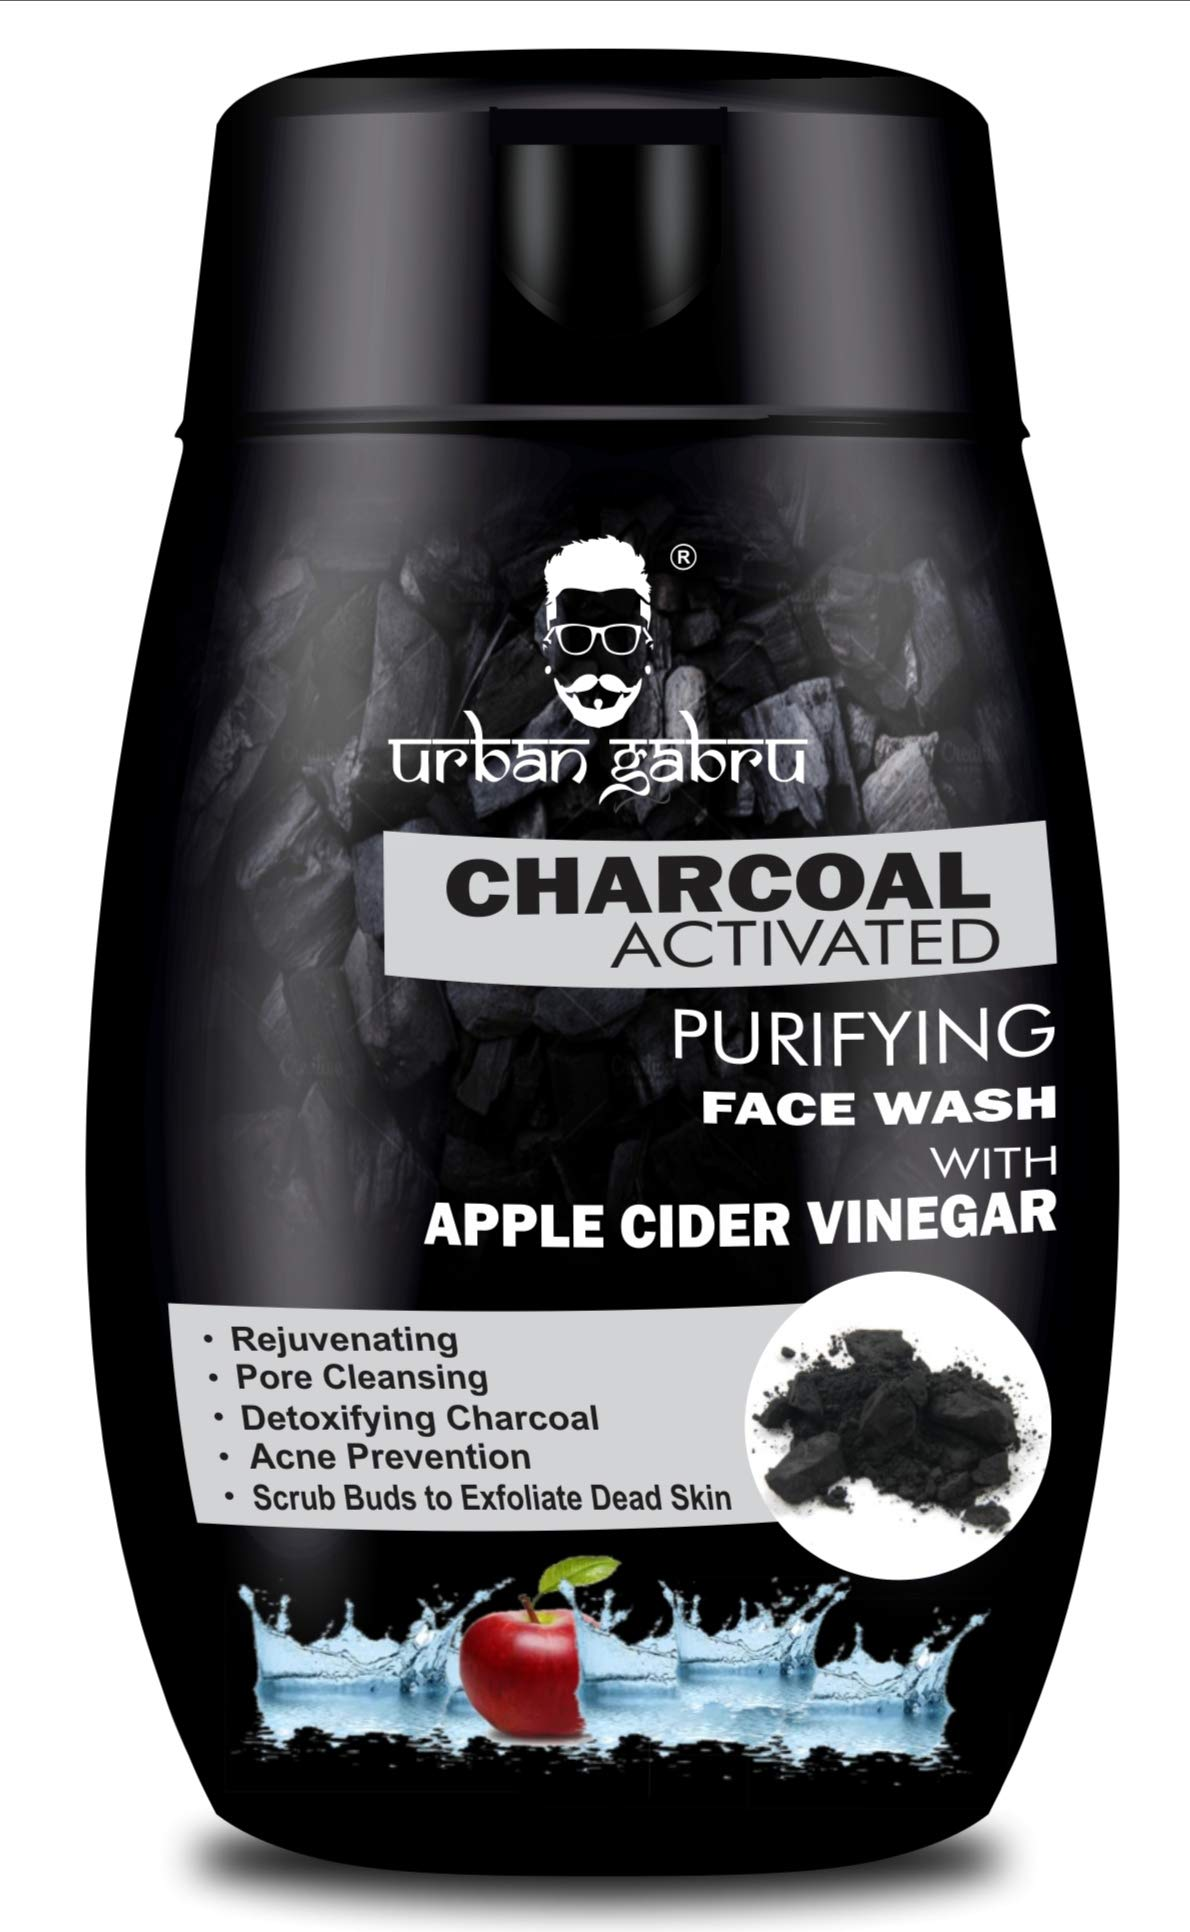 UrbanGabru Charcoal Face Wash with Apple Cider Vinegar for Pimple / Acne control and clear Glowing Skin(120g) product image